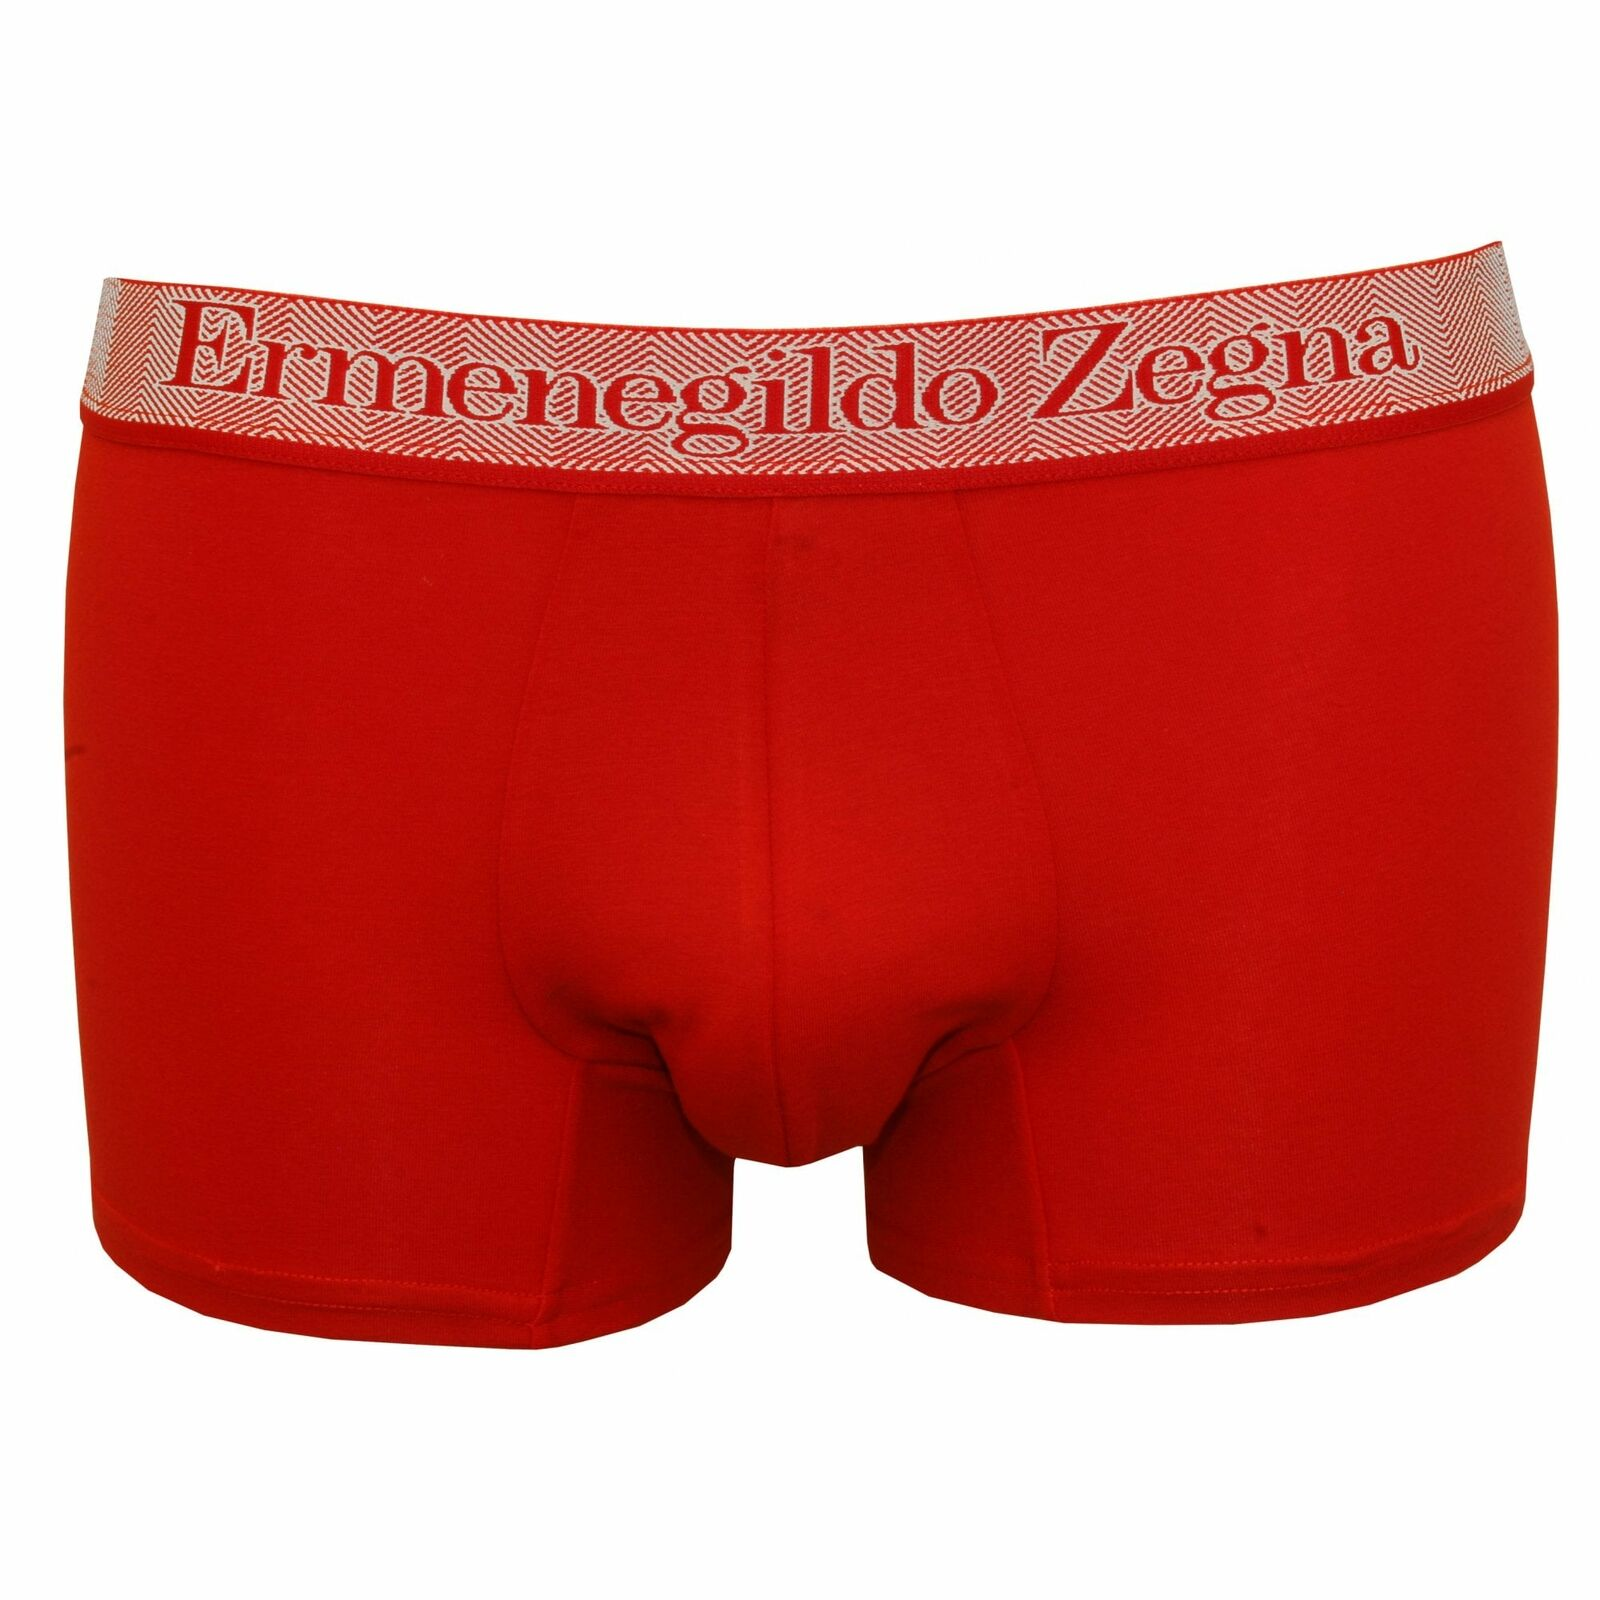 Ermenegildo Zegna Stretch Cotton Men's Boxer Trunk, Berry Red